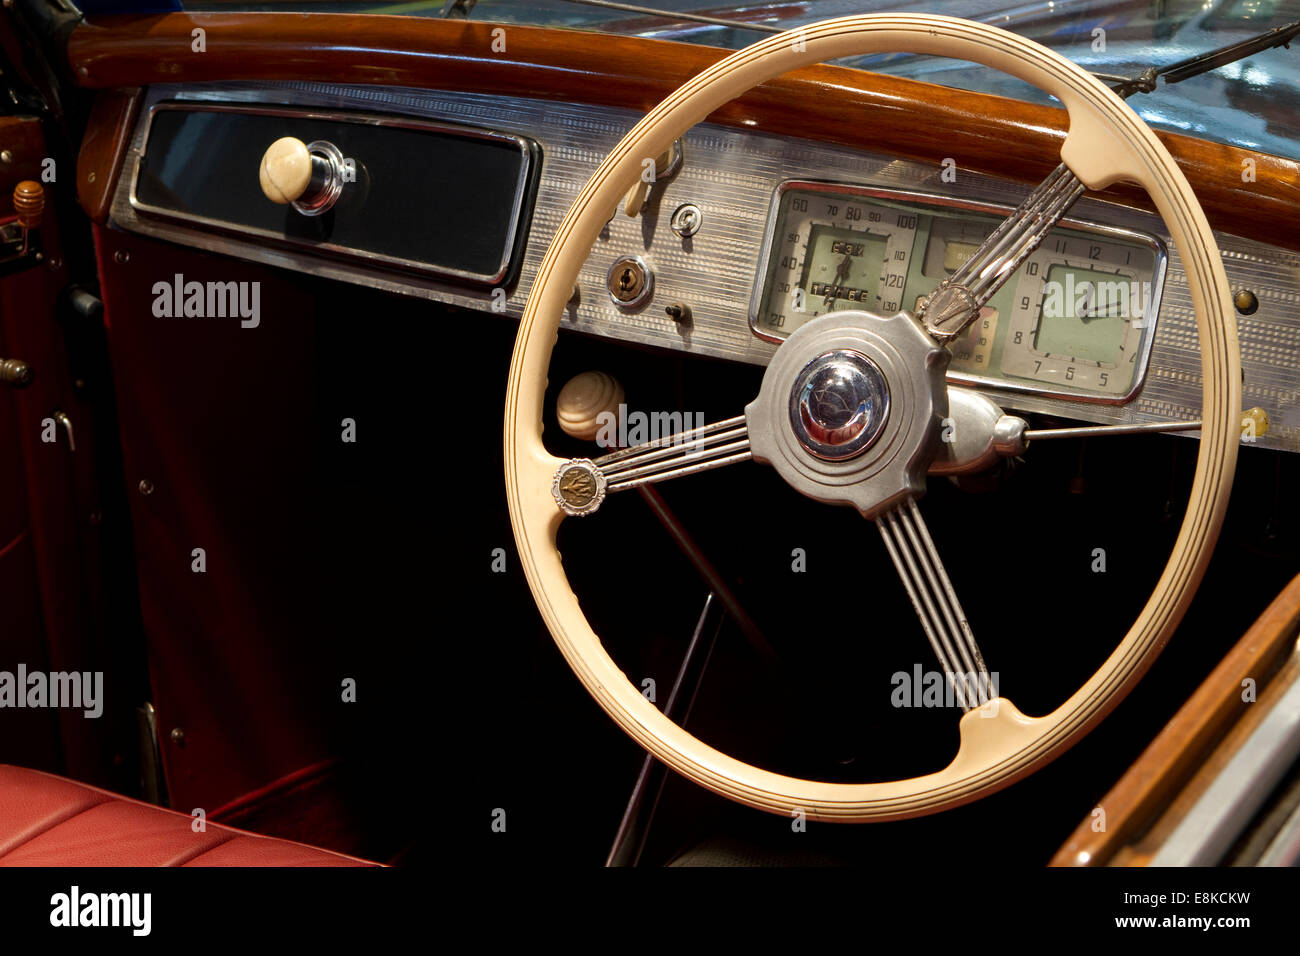 https://c7.alamy.com/comp/E8KCKW/dashboard-and-steering-wheel-of-a-1939-lancia-aprilia-cabriolet-E8KCKW.jpg